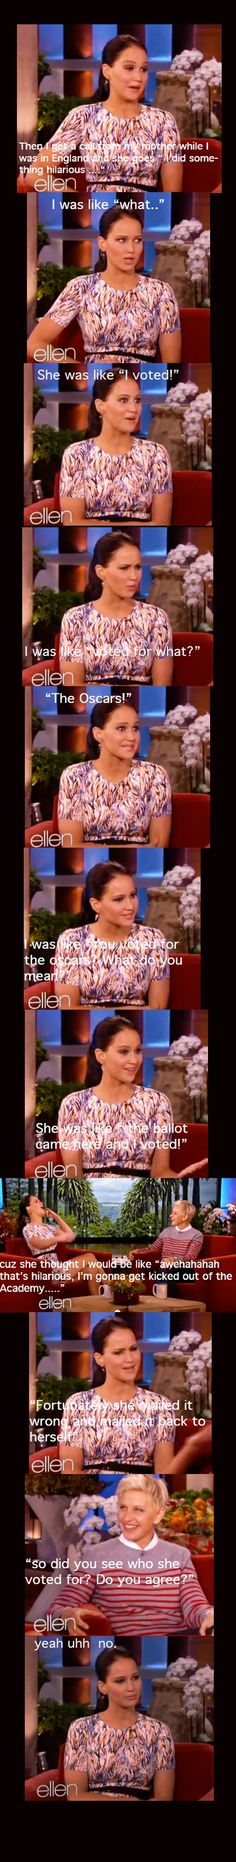 Jennifer Lawrence Interview with Ellen haha